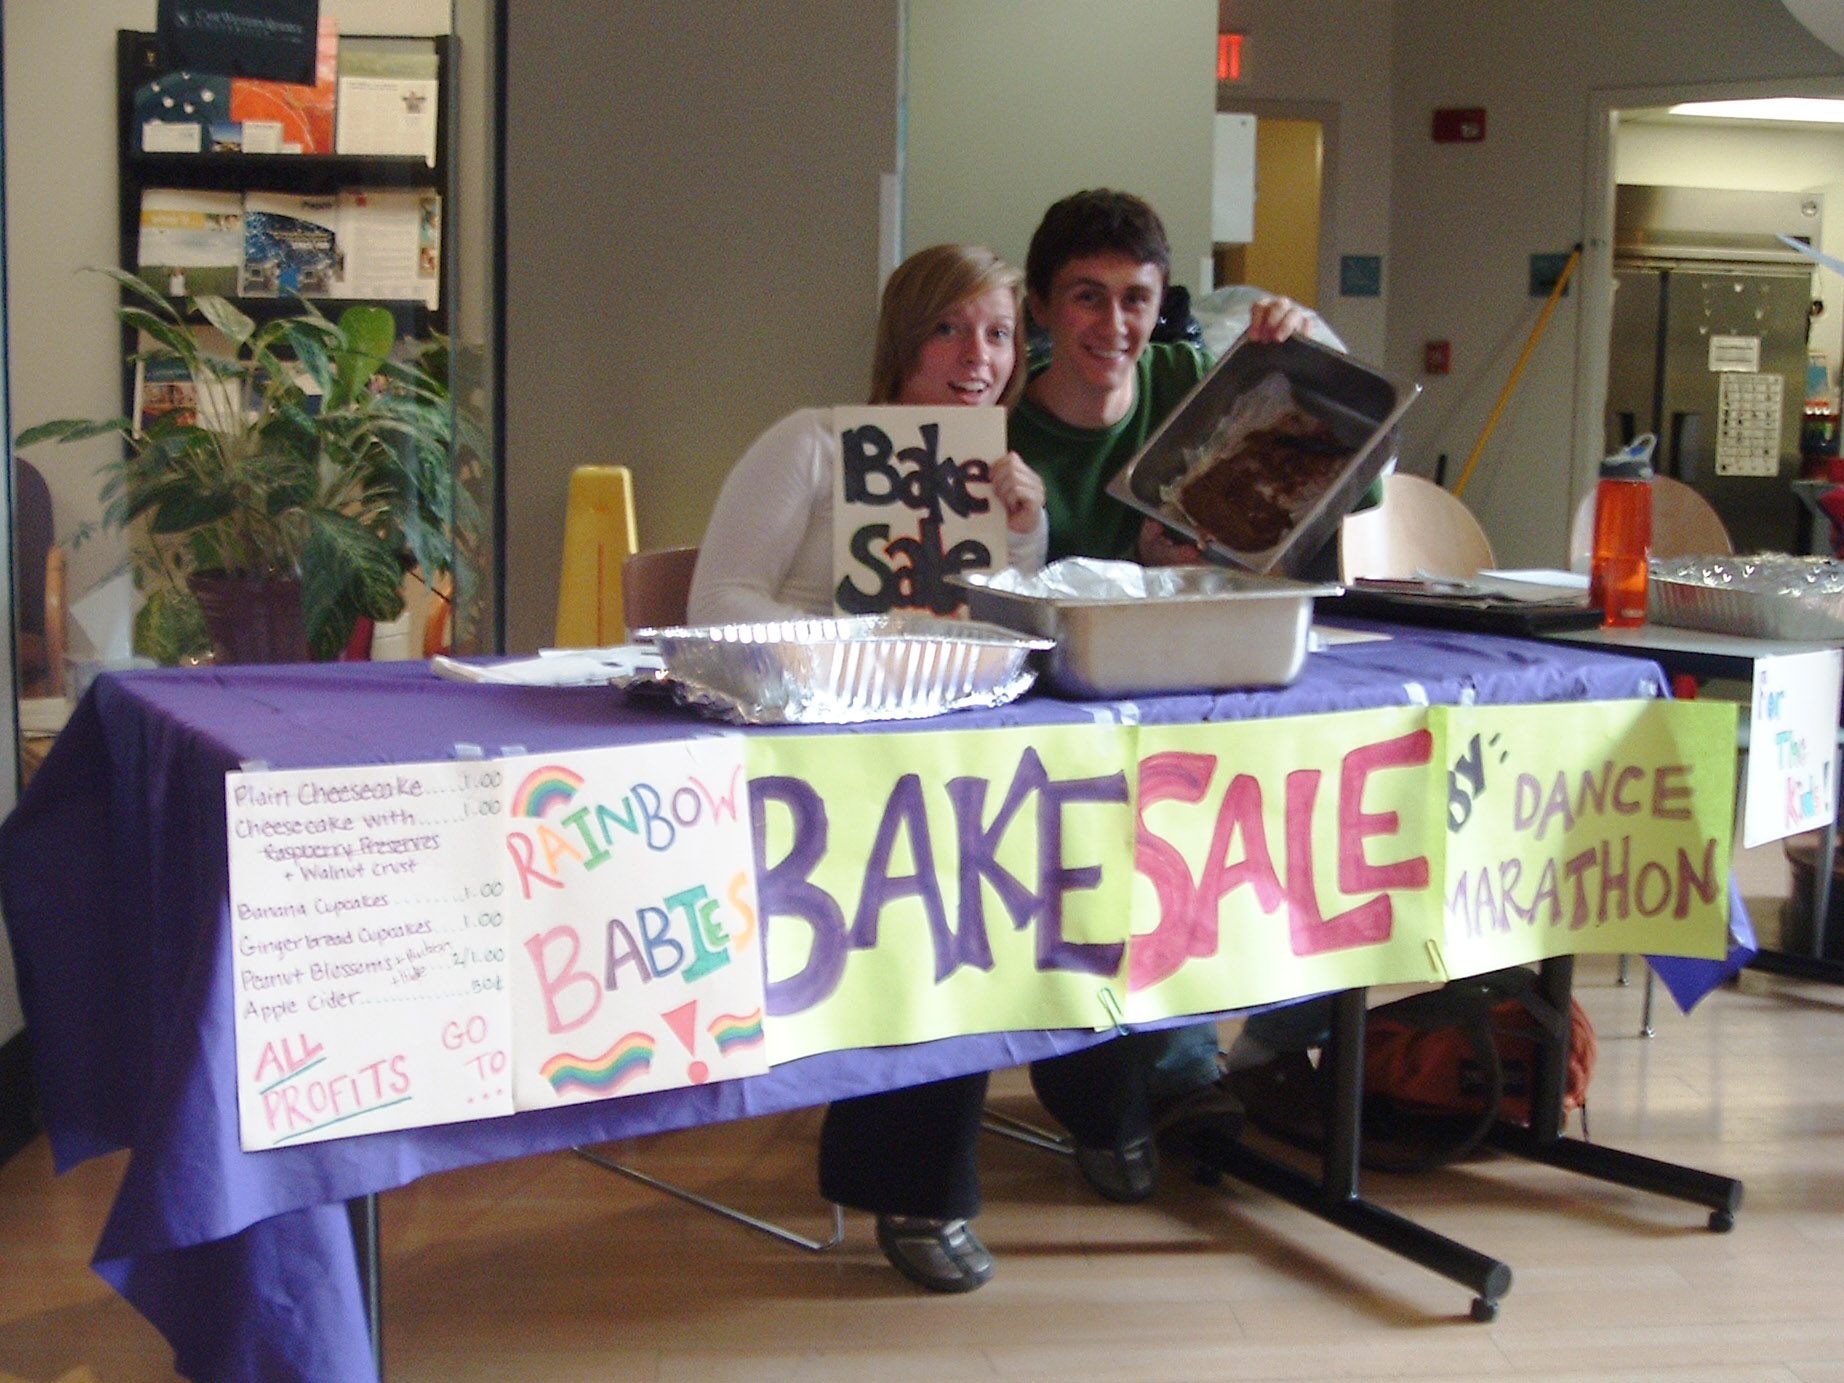 dance marathon bake sale